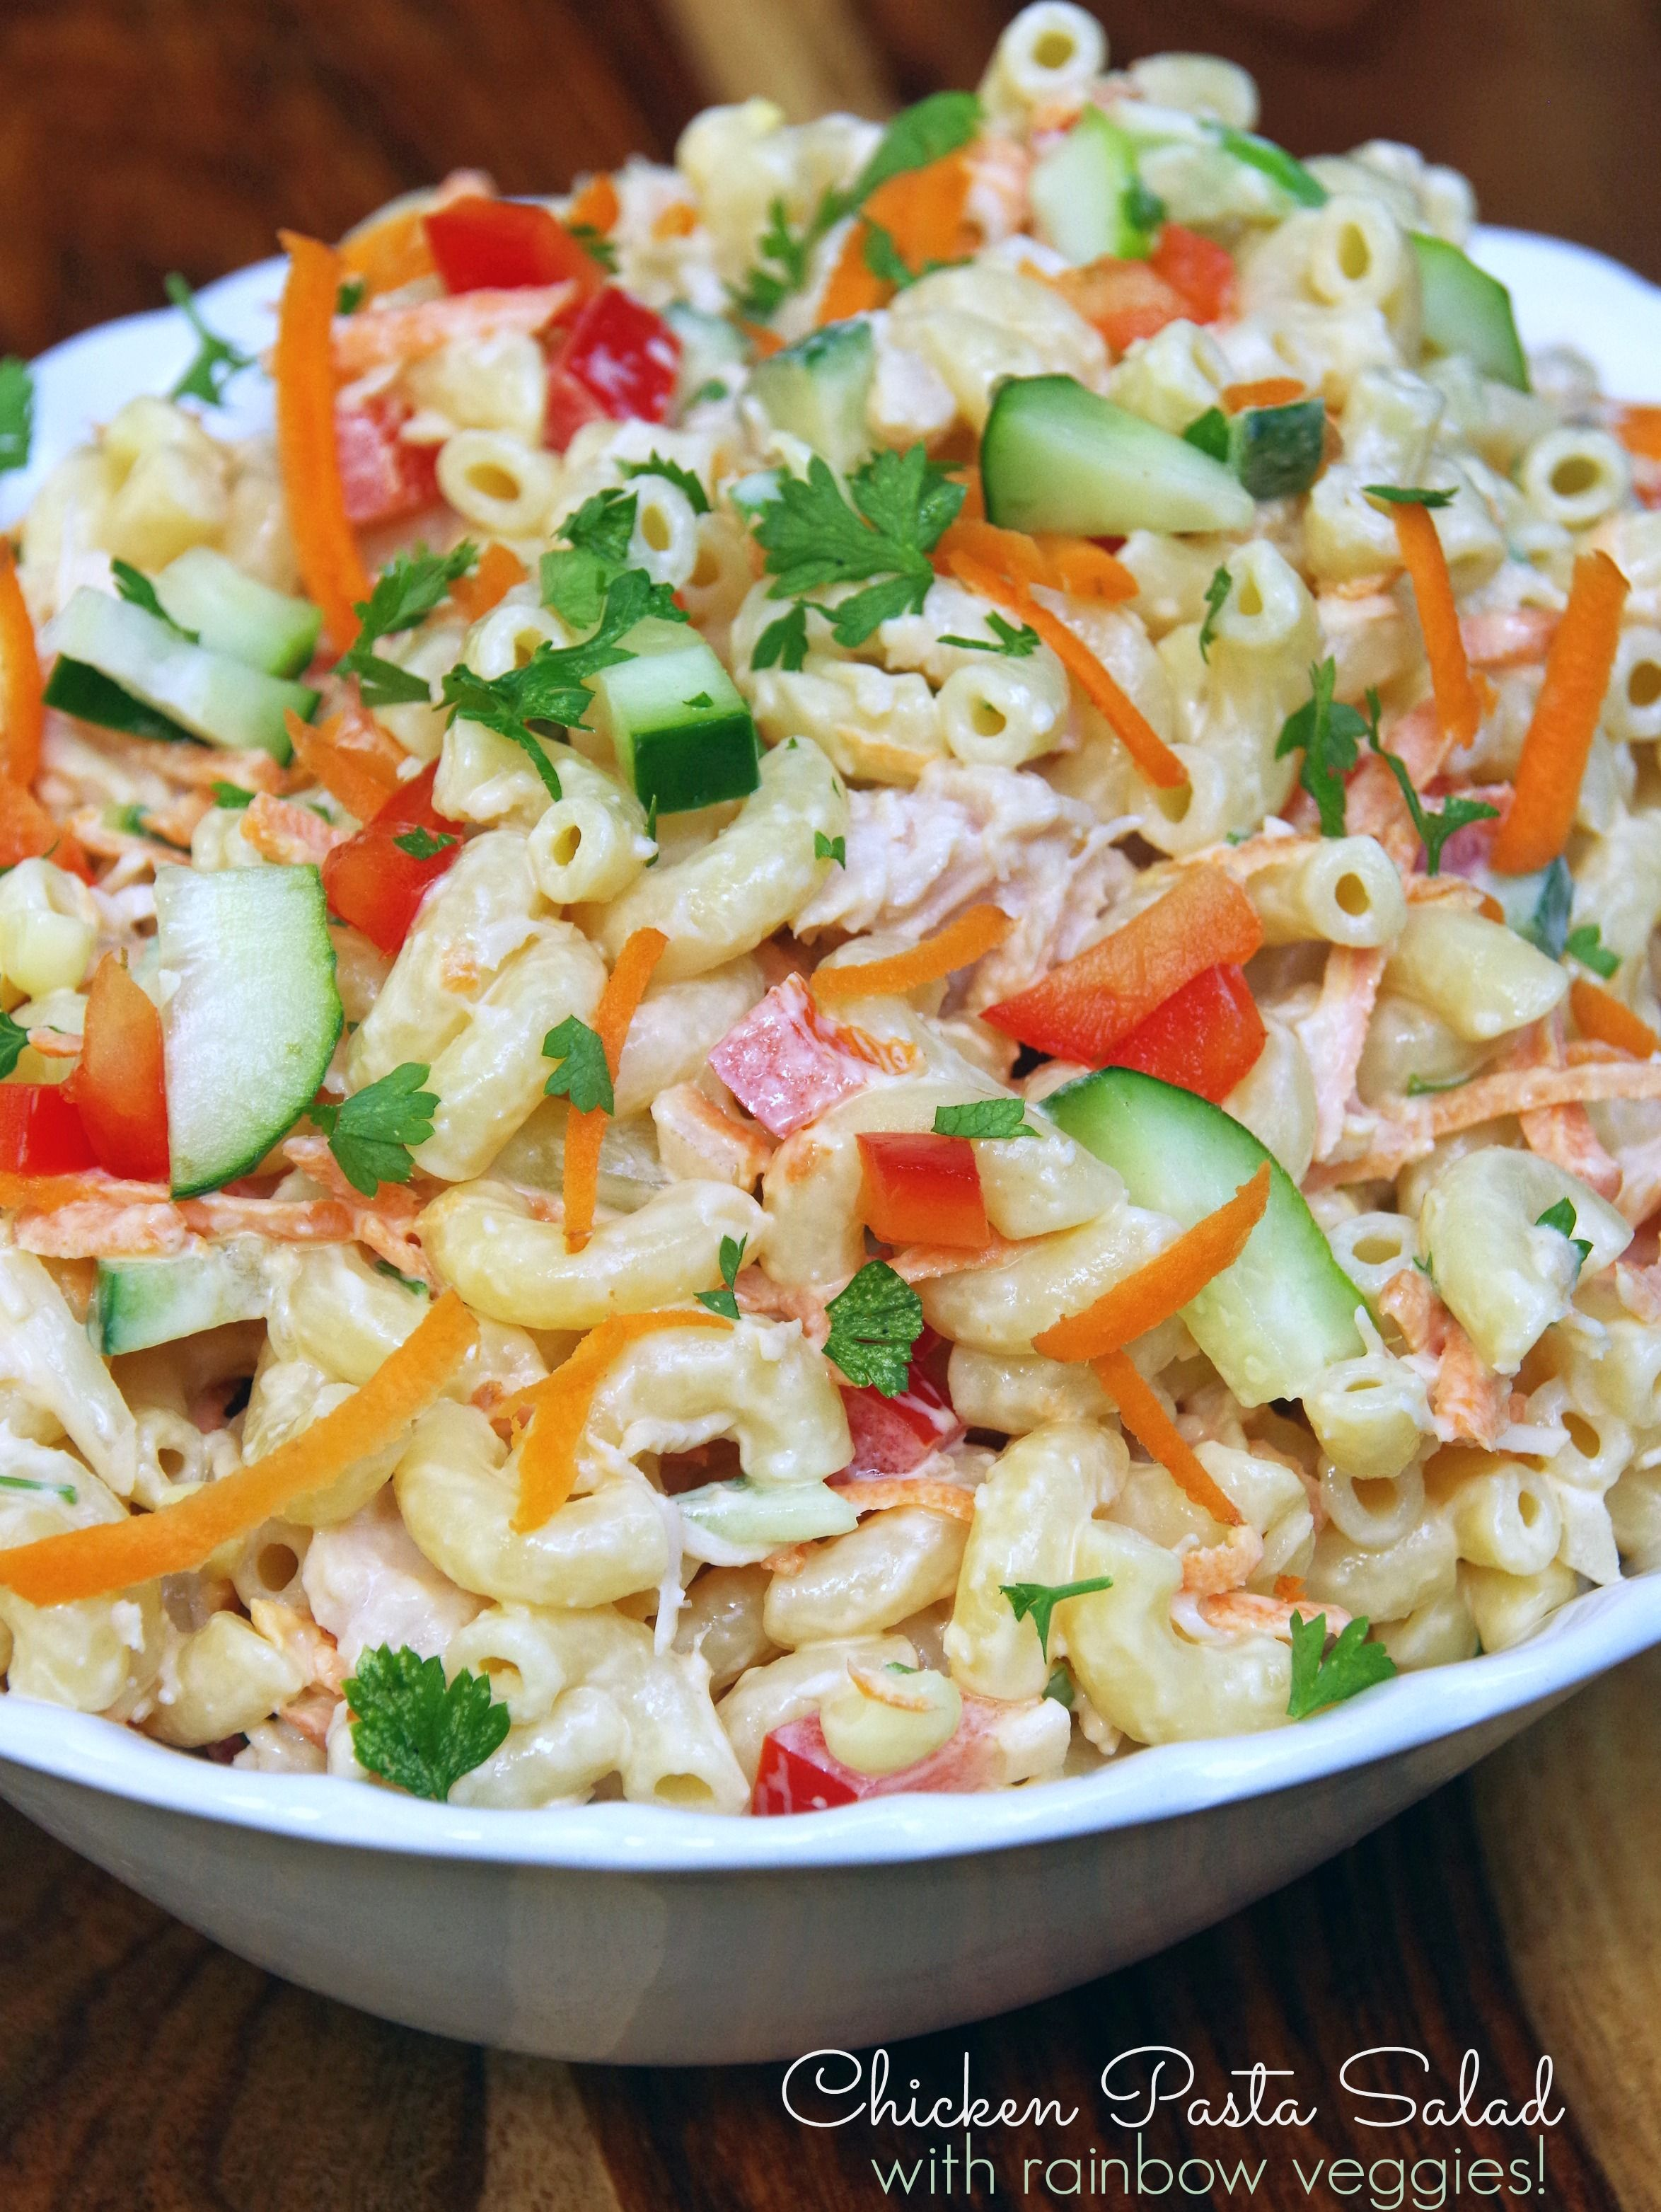 Cold Chicken Pasta Salad Recipe With A Rainbow Of Veggies Recipe Pasta Salad Recipes Chicken Pasta Salad Cold Chicken Pasta Salad